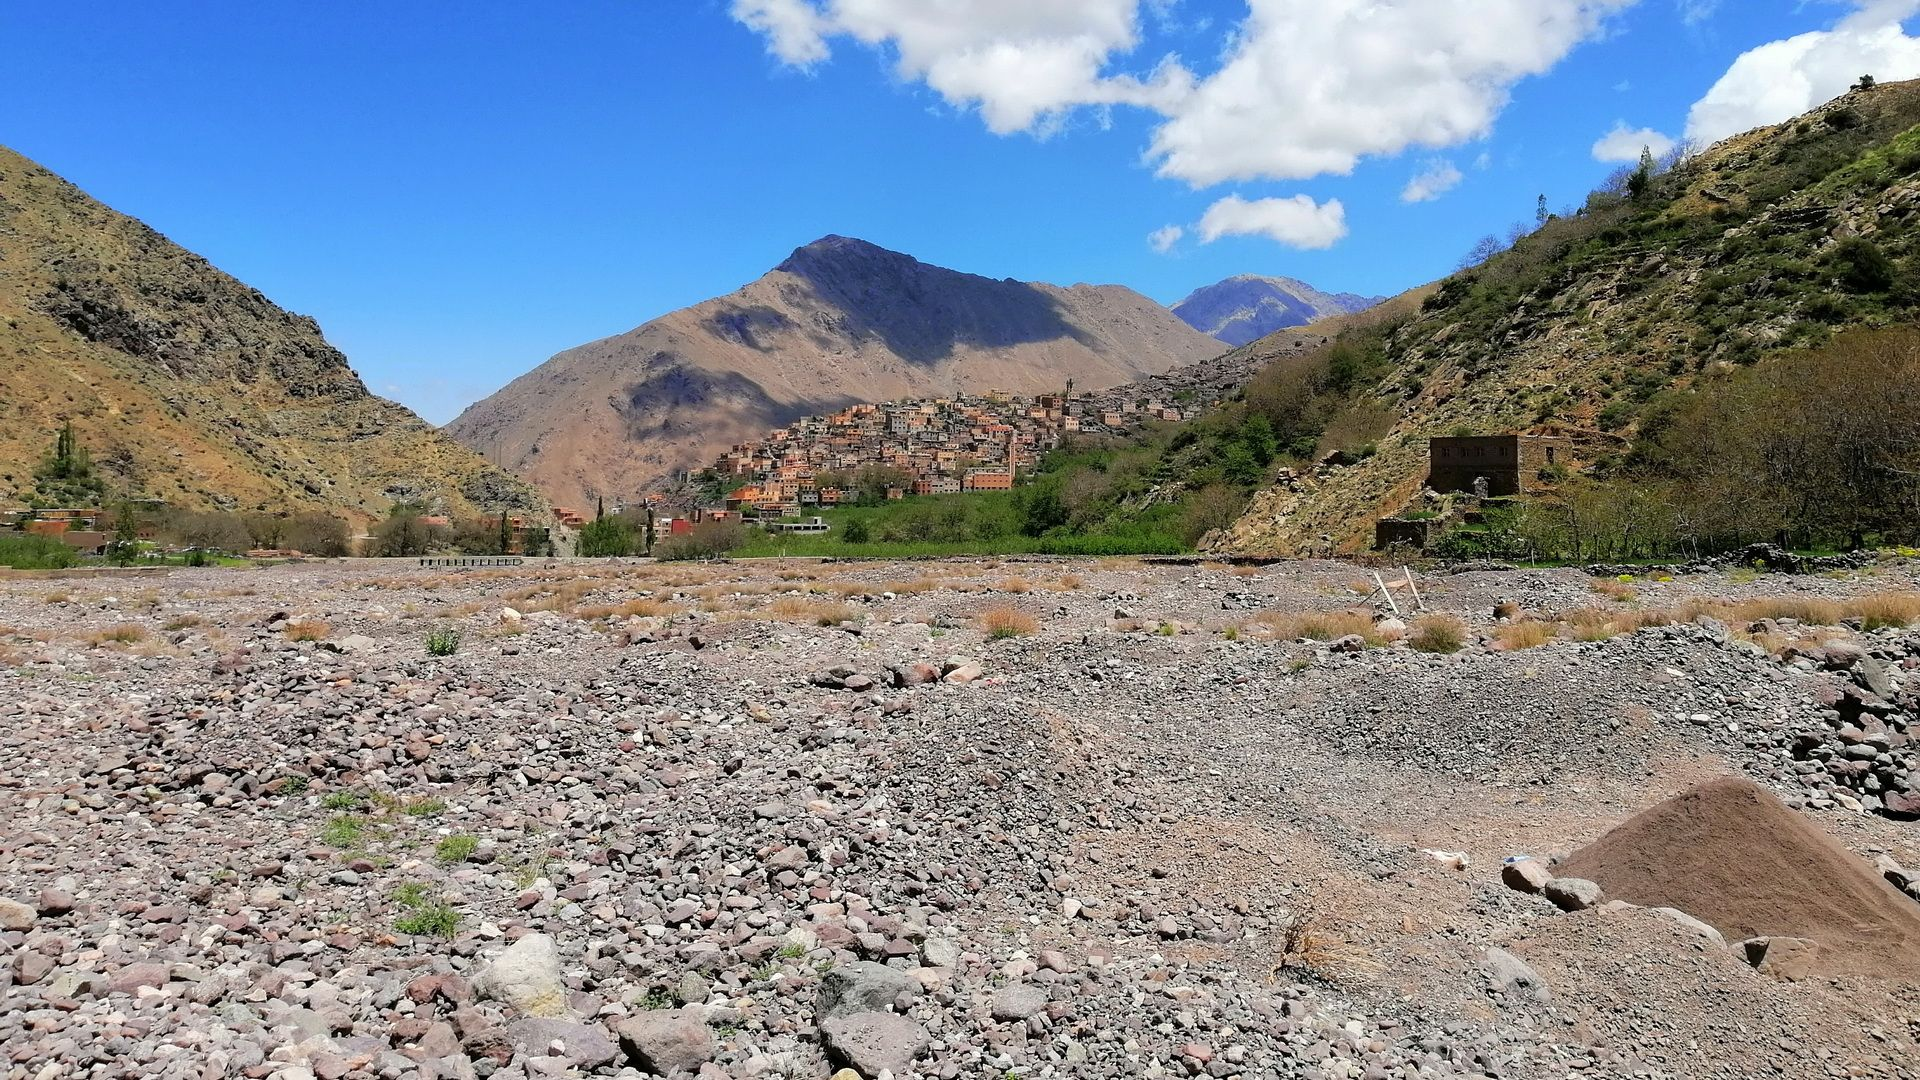 Pathfinders Treks - Oukaimeden and Toubkal National Park trek